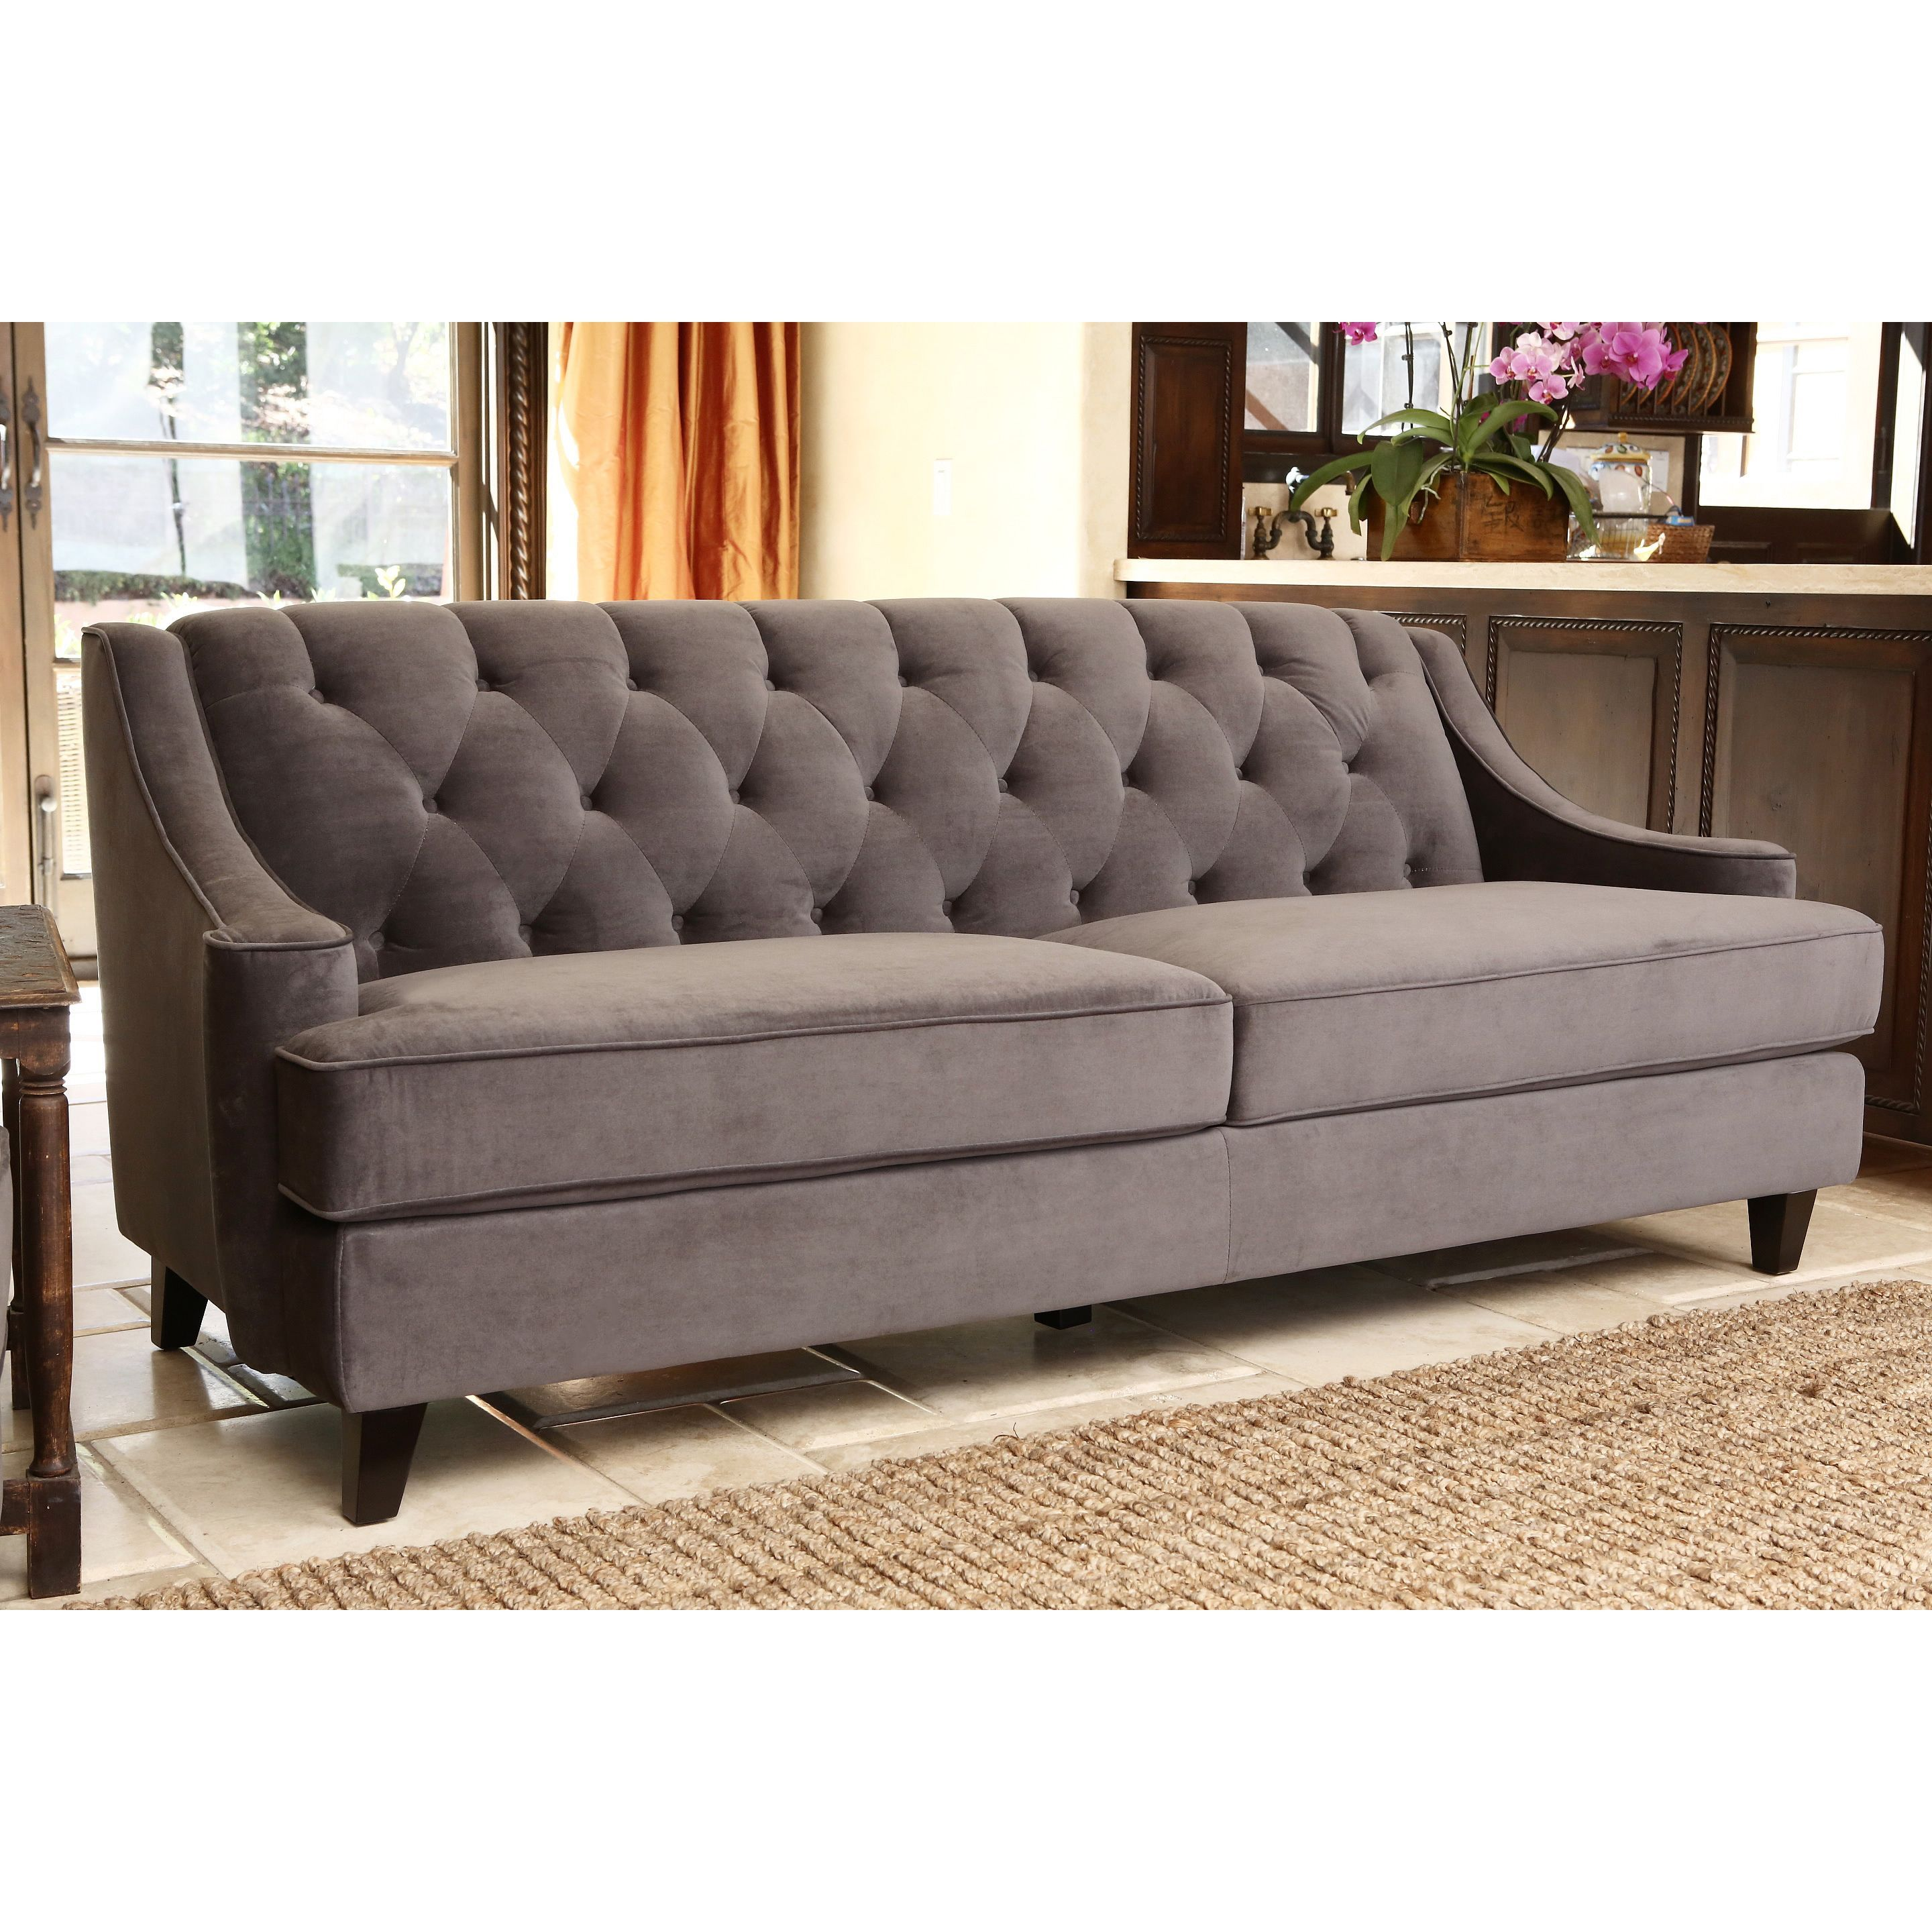 Created With Style And Refinement, This Abbyson Living Sofa Will Make A  Great Addition To